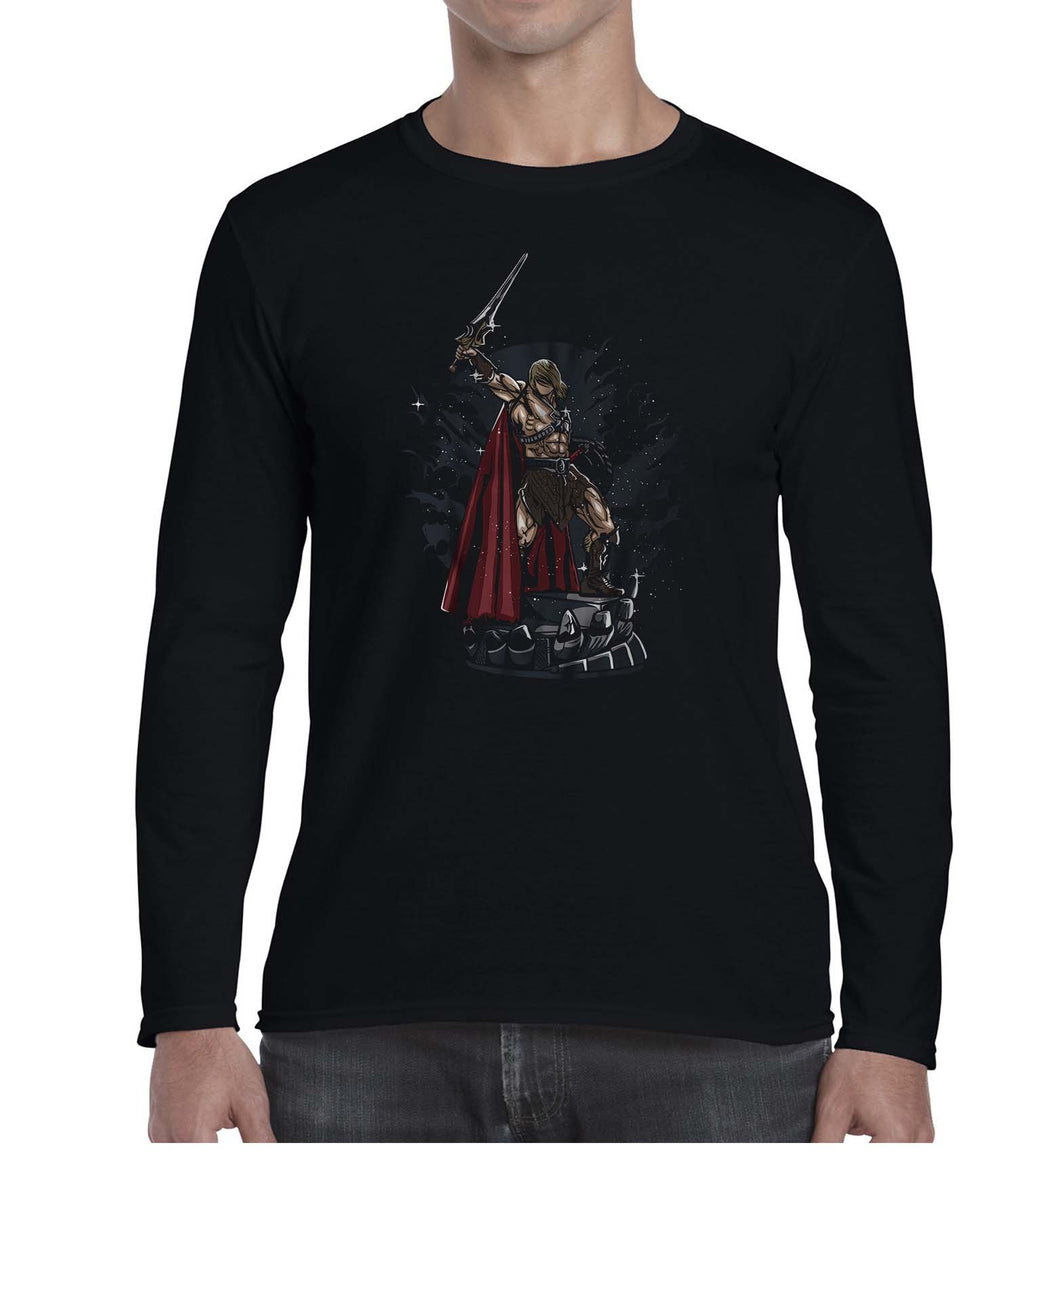 Master Of The Universe Cartoon Inspired Graphic Long Sleeve Tshirt Shirt Mens Unisex 3329